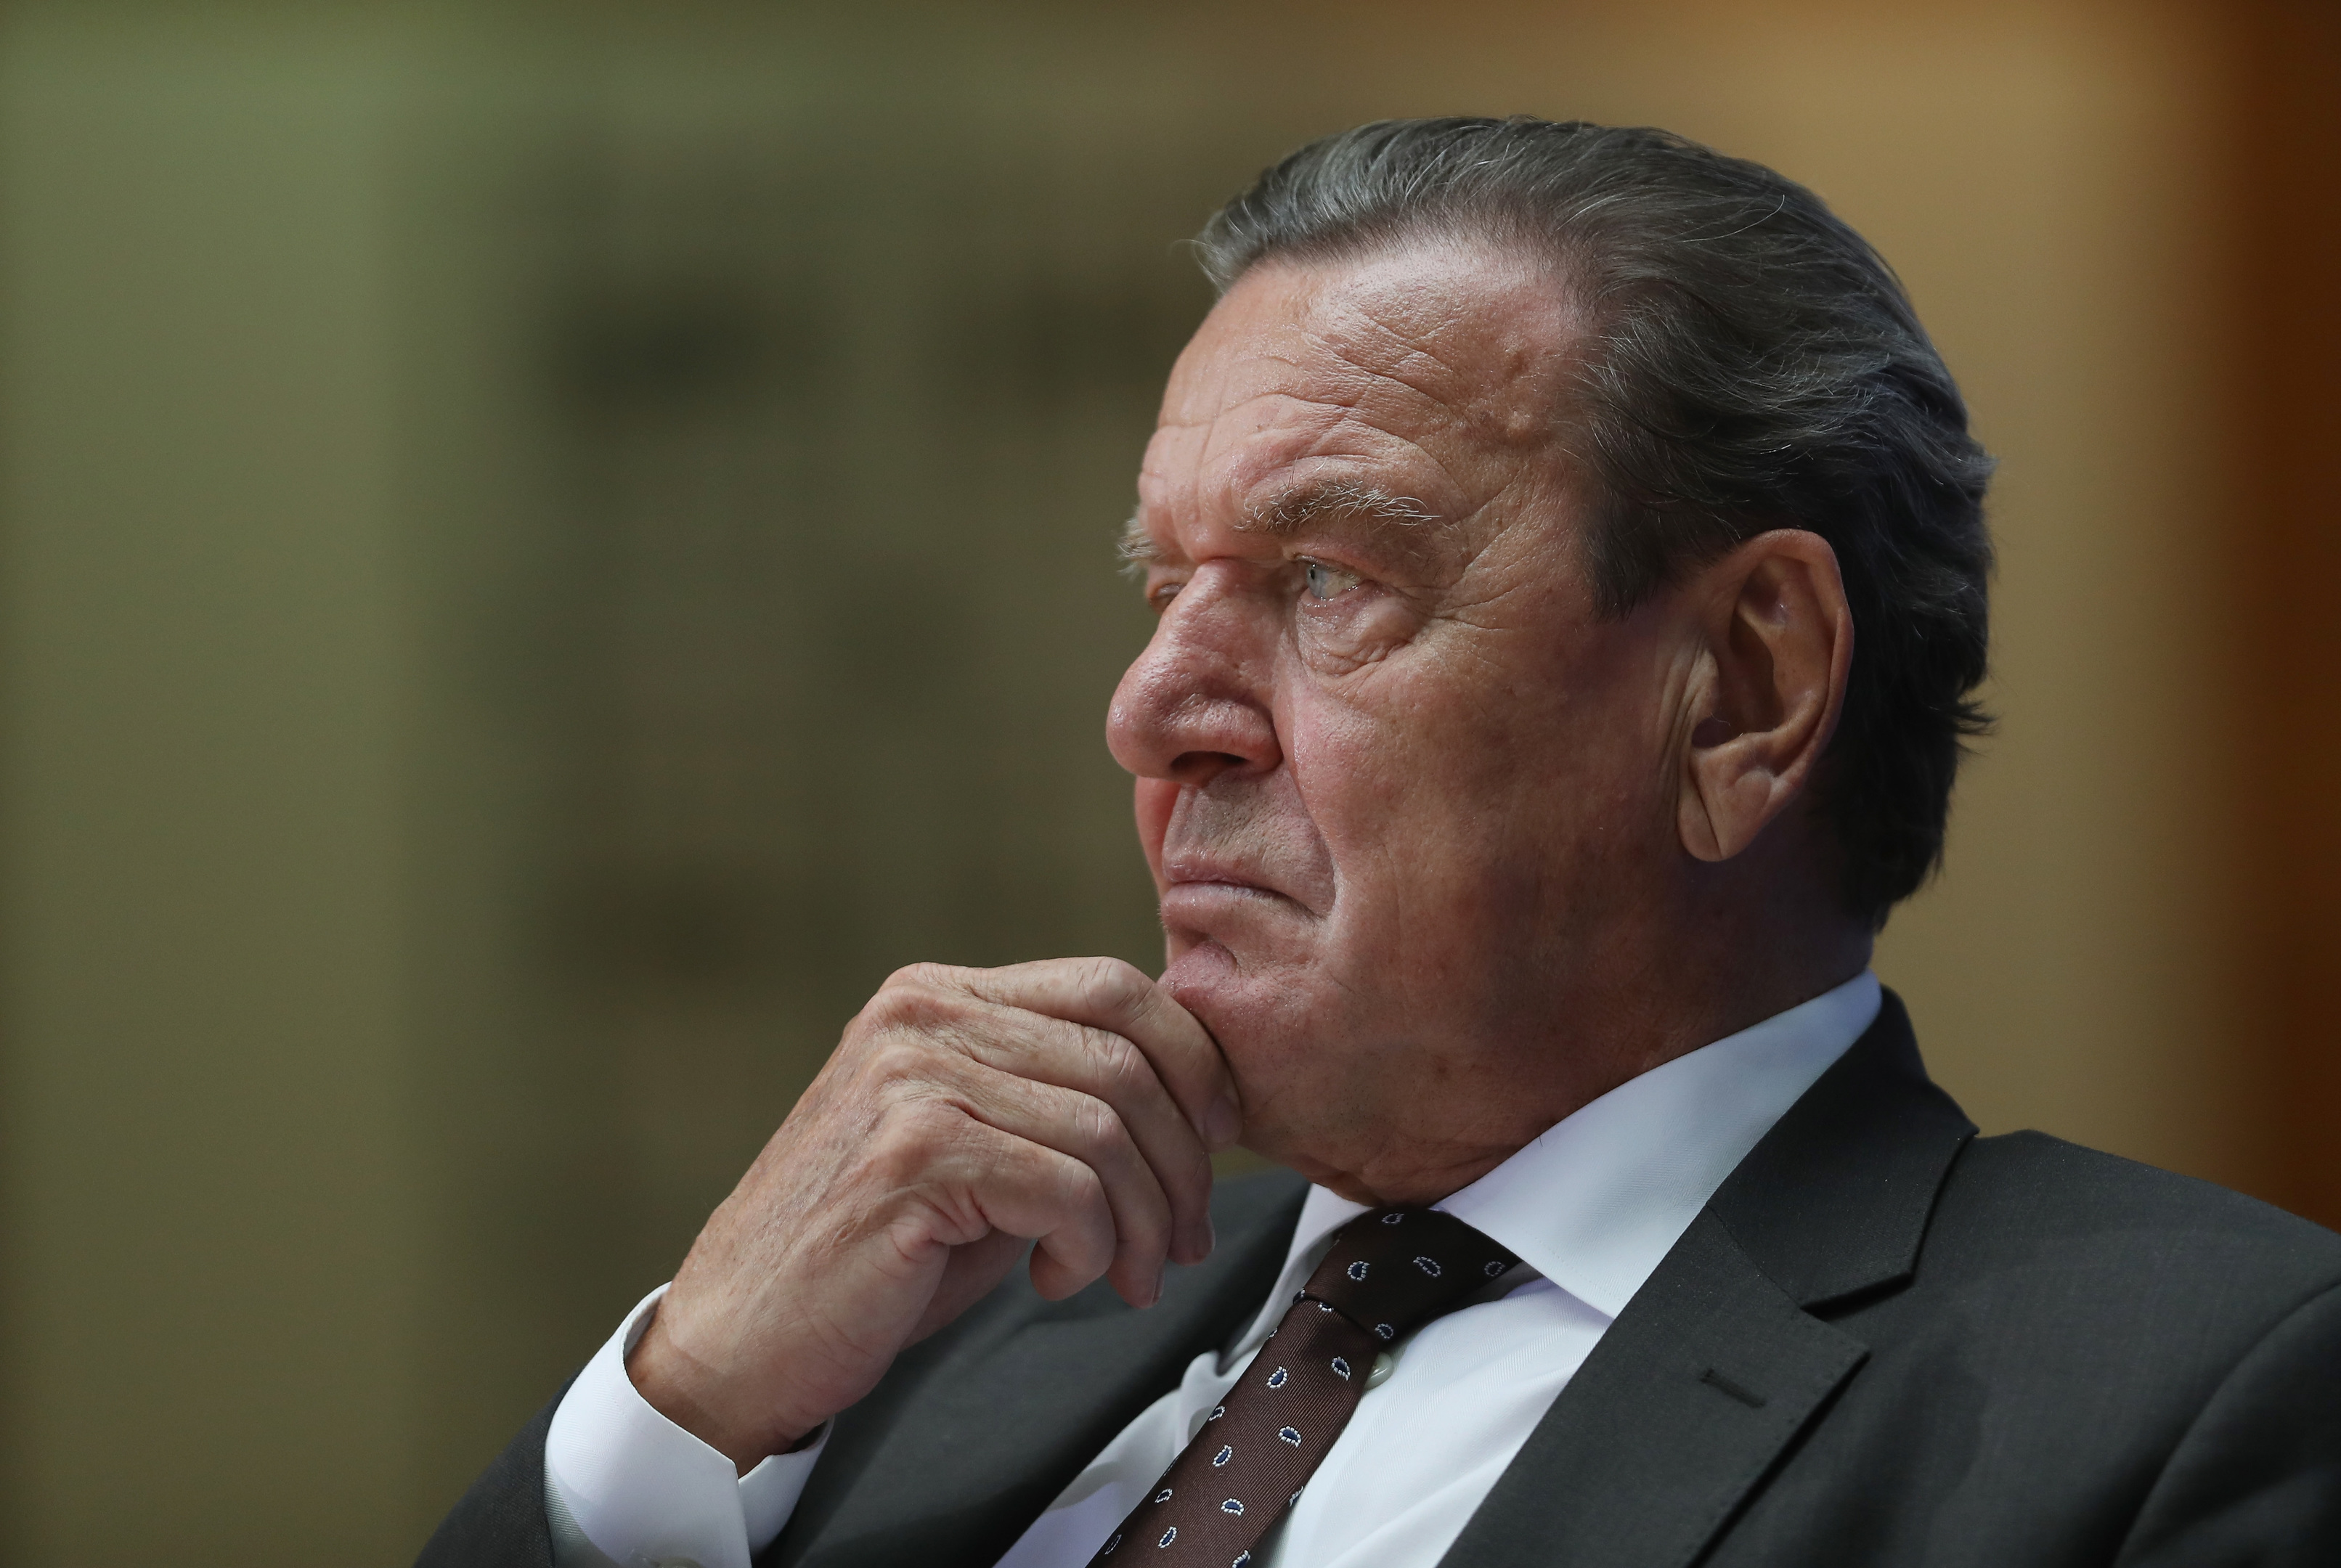 "BERLIN, GERMANY - SEPTEMBER 29:  Former German Chancellor Gerhard Schroeder attends the presentation of the book: ""Helmut Schmidt - The Later Years"" on September 29, 2016 in Berlin, Germany. Schmidt, a Social Democrat (SPD), led Germany as chancellor from 1974 to 1982 and died last year. Schroeder, als a Social Democrat, served as chancellor from 1998 to 2005.  (Photo by Sean Gallup/Getty Images)"